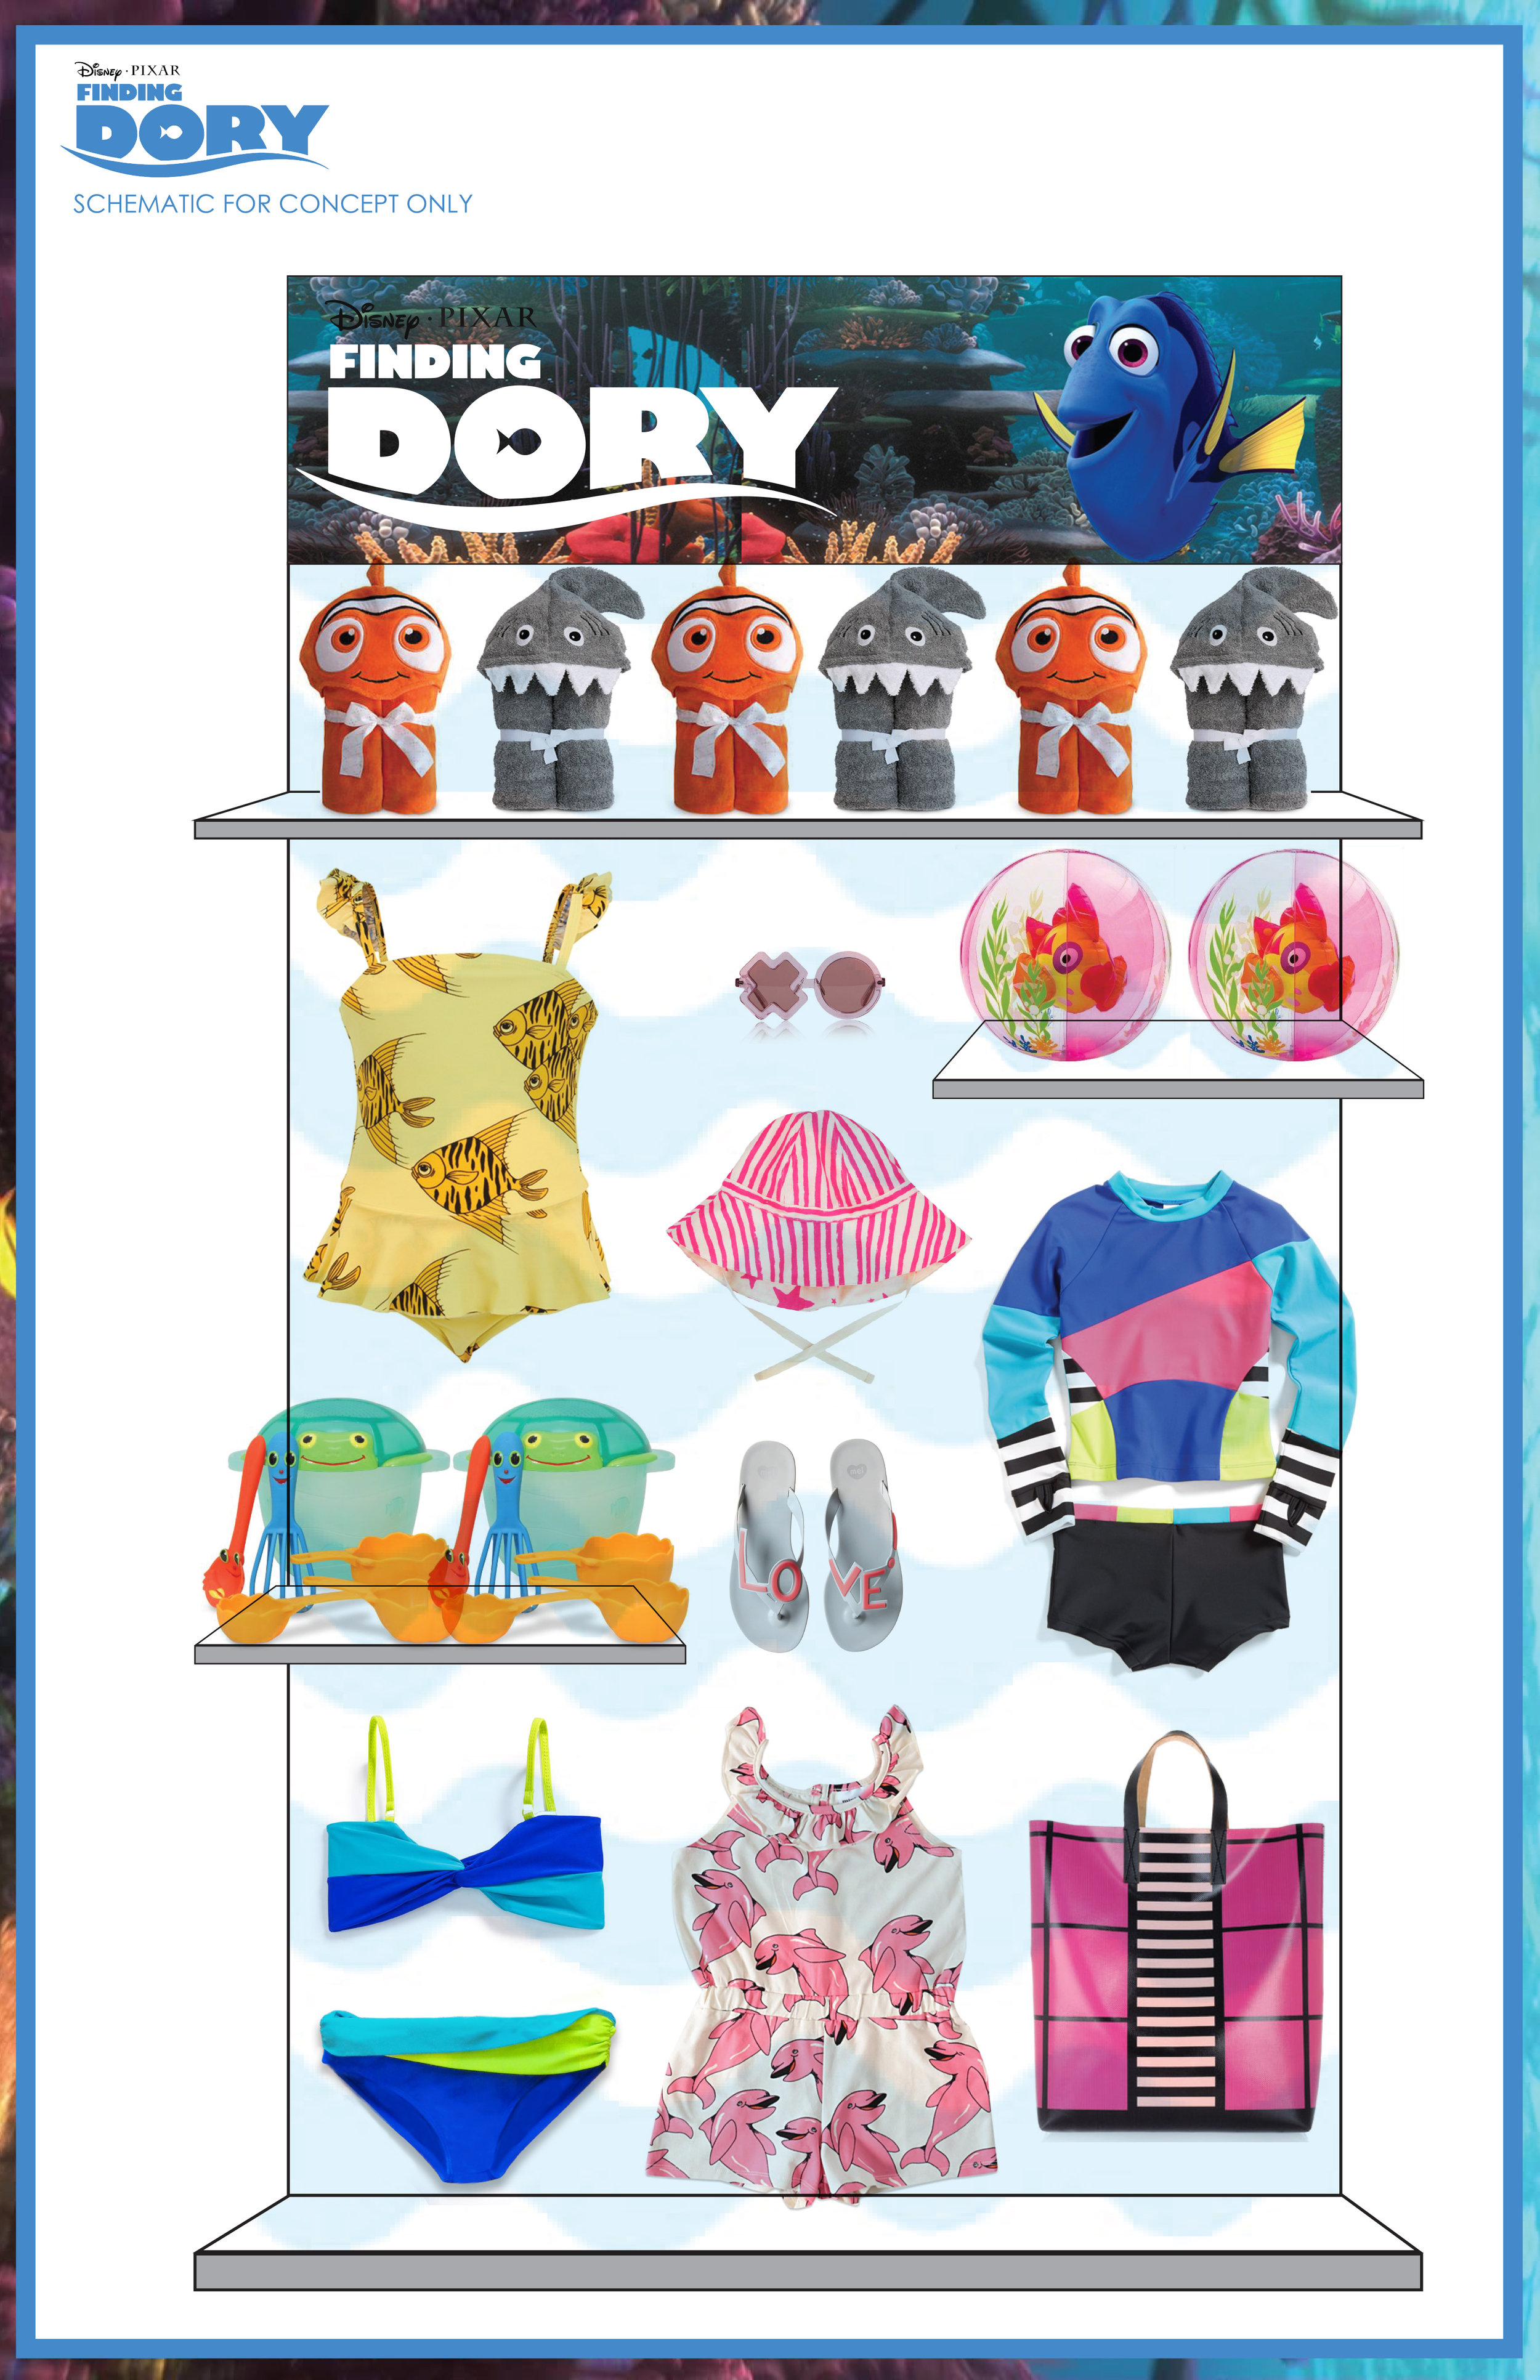 TARGETxFINDING DORY MOVIE LAUNCH VENDOR DIRECTION